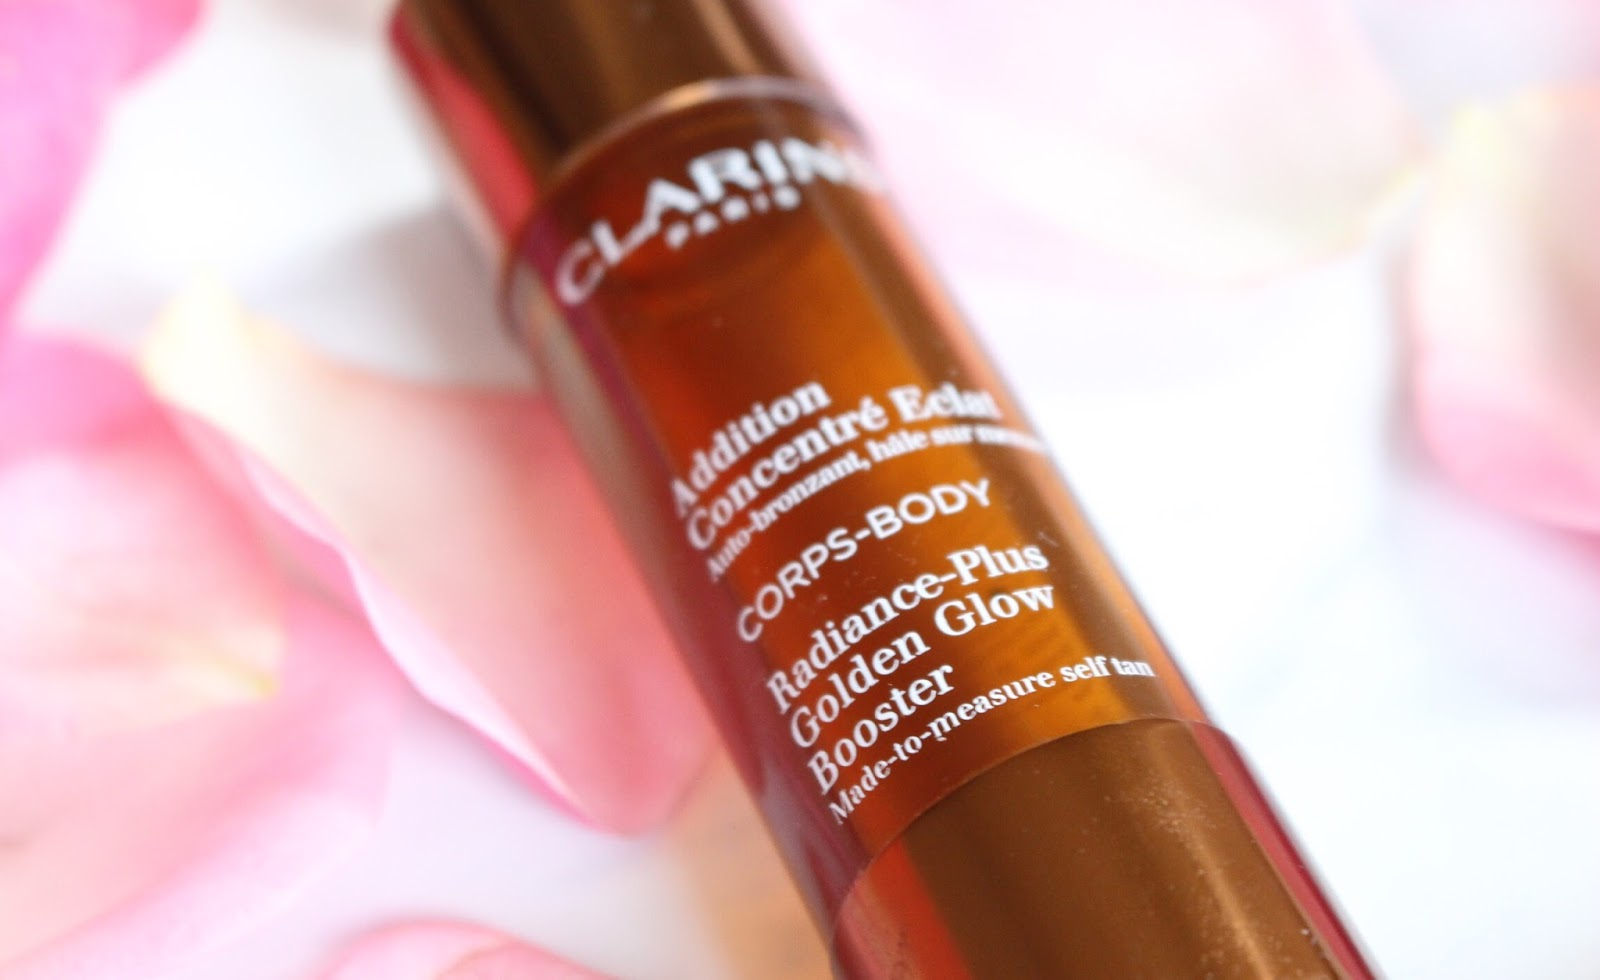 Shoppinator-Shoppination-Blog-Review-Selbstbräuner-Selbstbräunertest-Selbstbräunerreview-Clarins-Selbstbräunertropfen-Addition-Concentré-Eclat-Radiance-Plus-Golden-Glow-Booster-Serum-Self-Tan-Loreal-Sublime-Bronze-Self-Tanning-Elixir-2-weeks-guter-Selbstbräuner-ohne-Streifen-orange